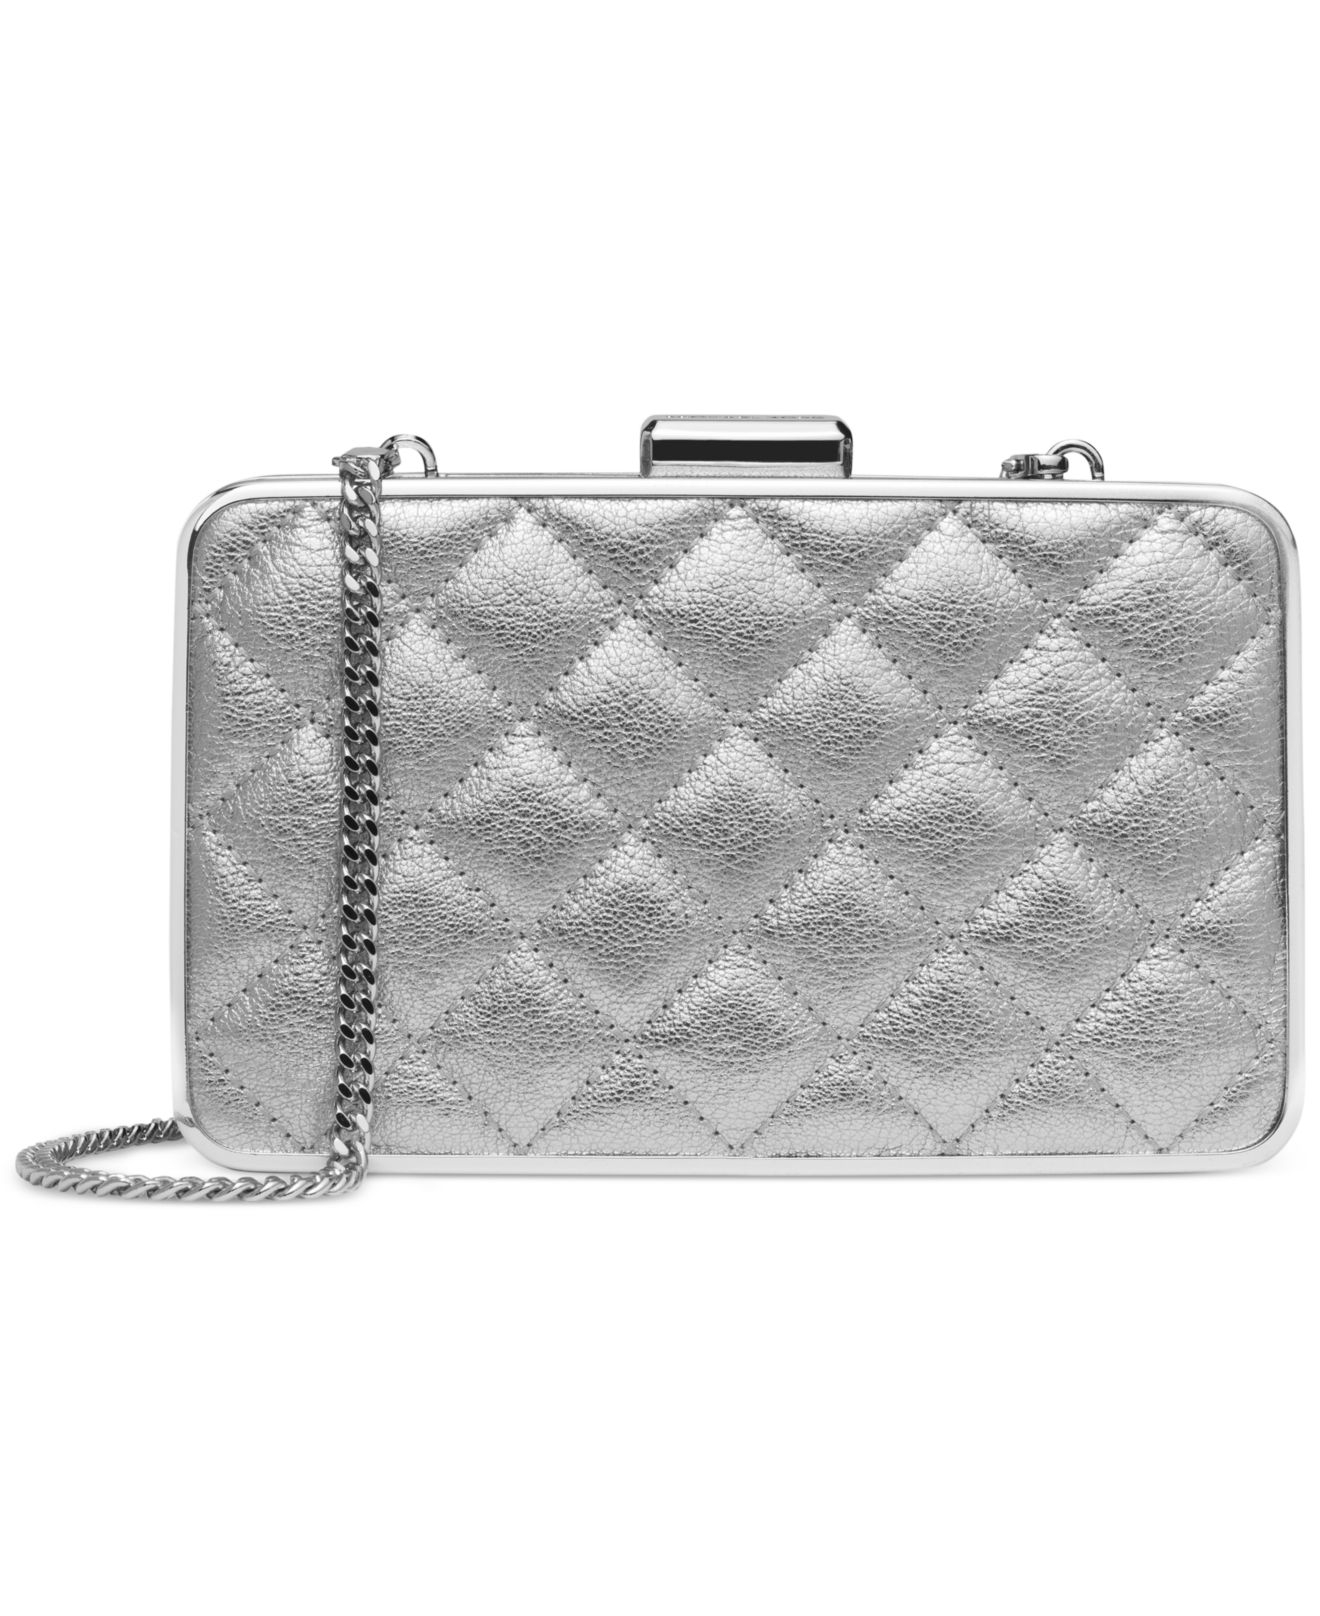 michael kors michael elsie quilted box clutch in metallic. Black Bedroom Furniture Sets. Home Design Ideas